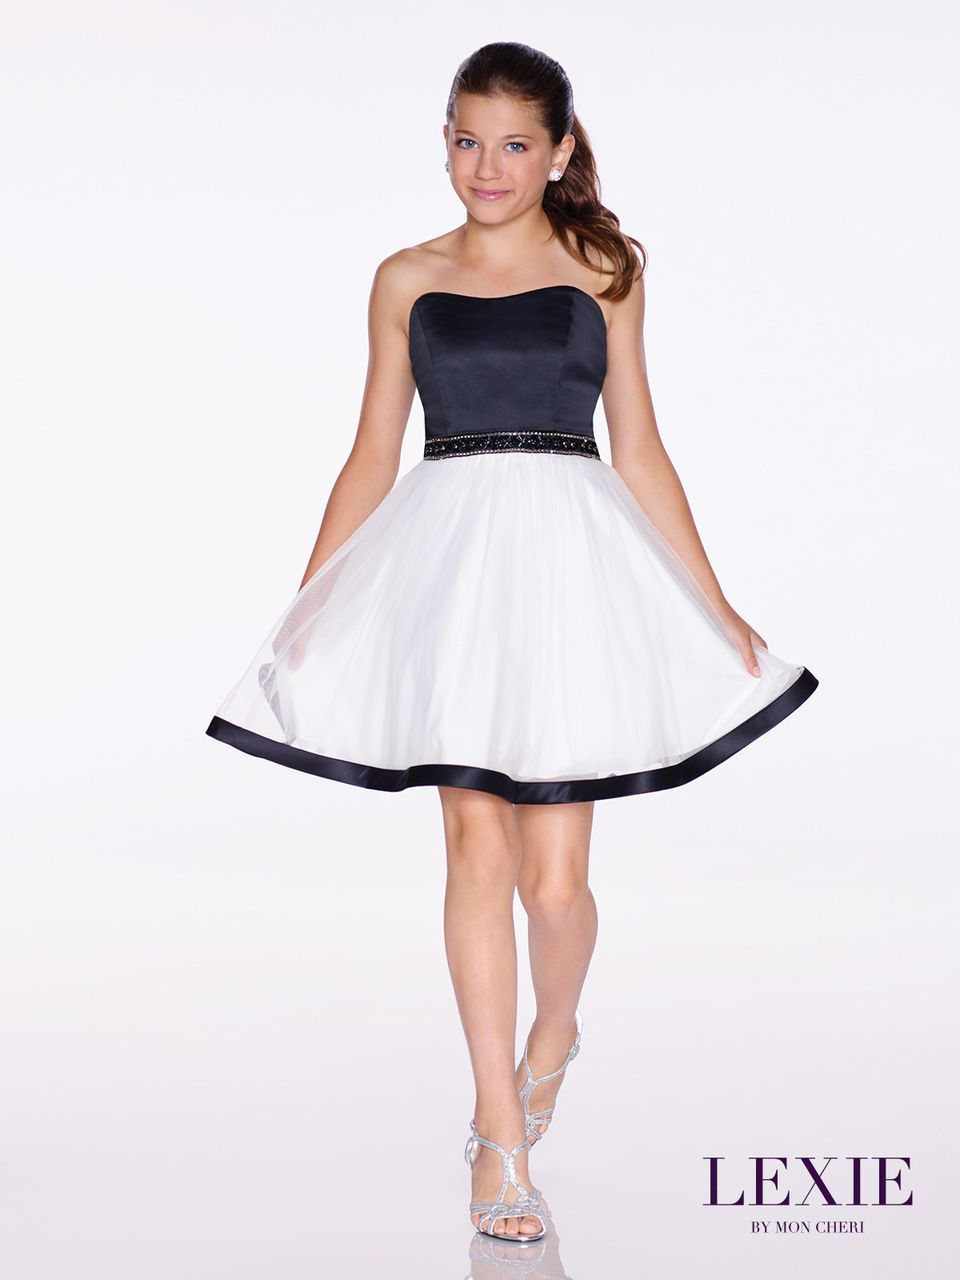 Formal Dress For Tweens | Lexie By Mon Cheri Tween Party Dress ...